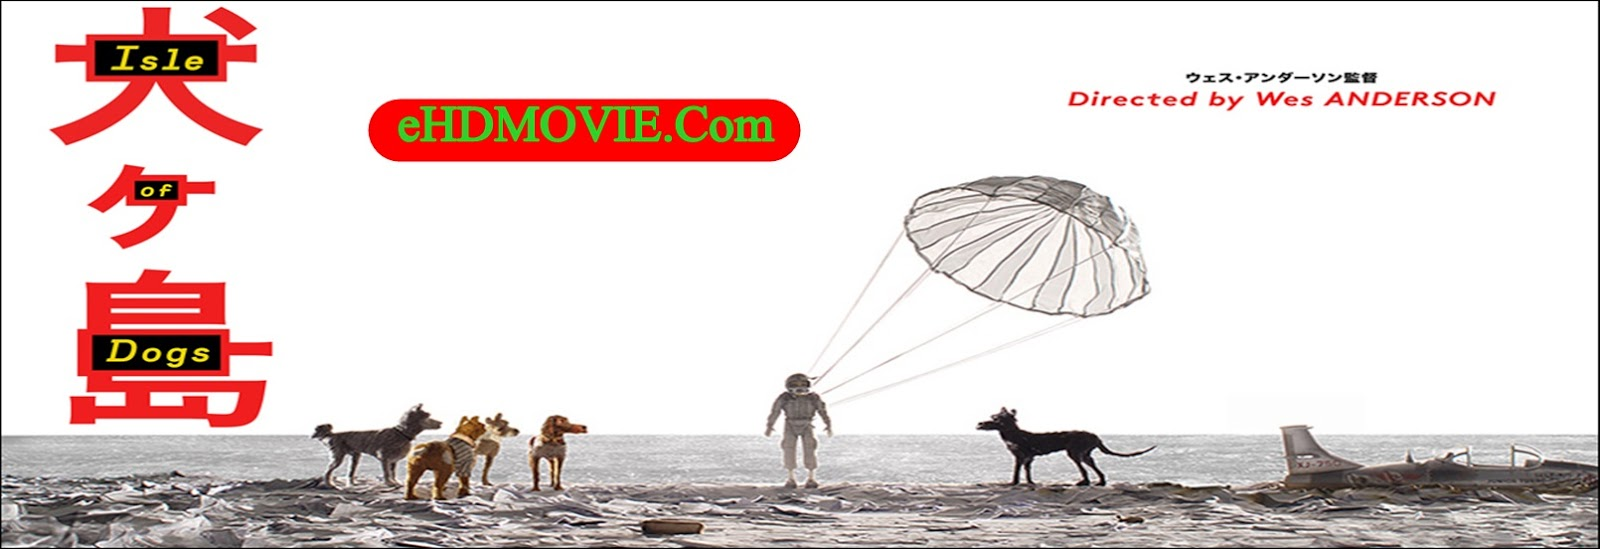 Isle of Dogs 2018 Full Movie Dual Audio [Hindi – English] 1080p - 720p - HEVC - 480p ORG BRRip 350MB - 450MB - 950MB - 2GB ESubs Free Download